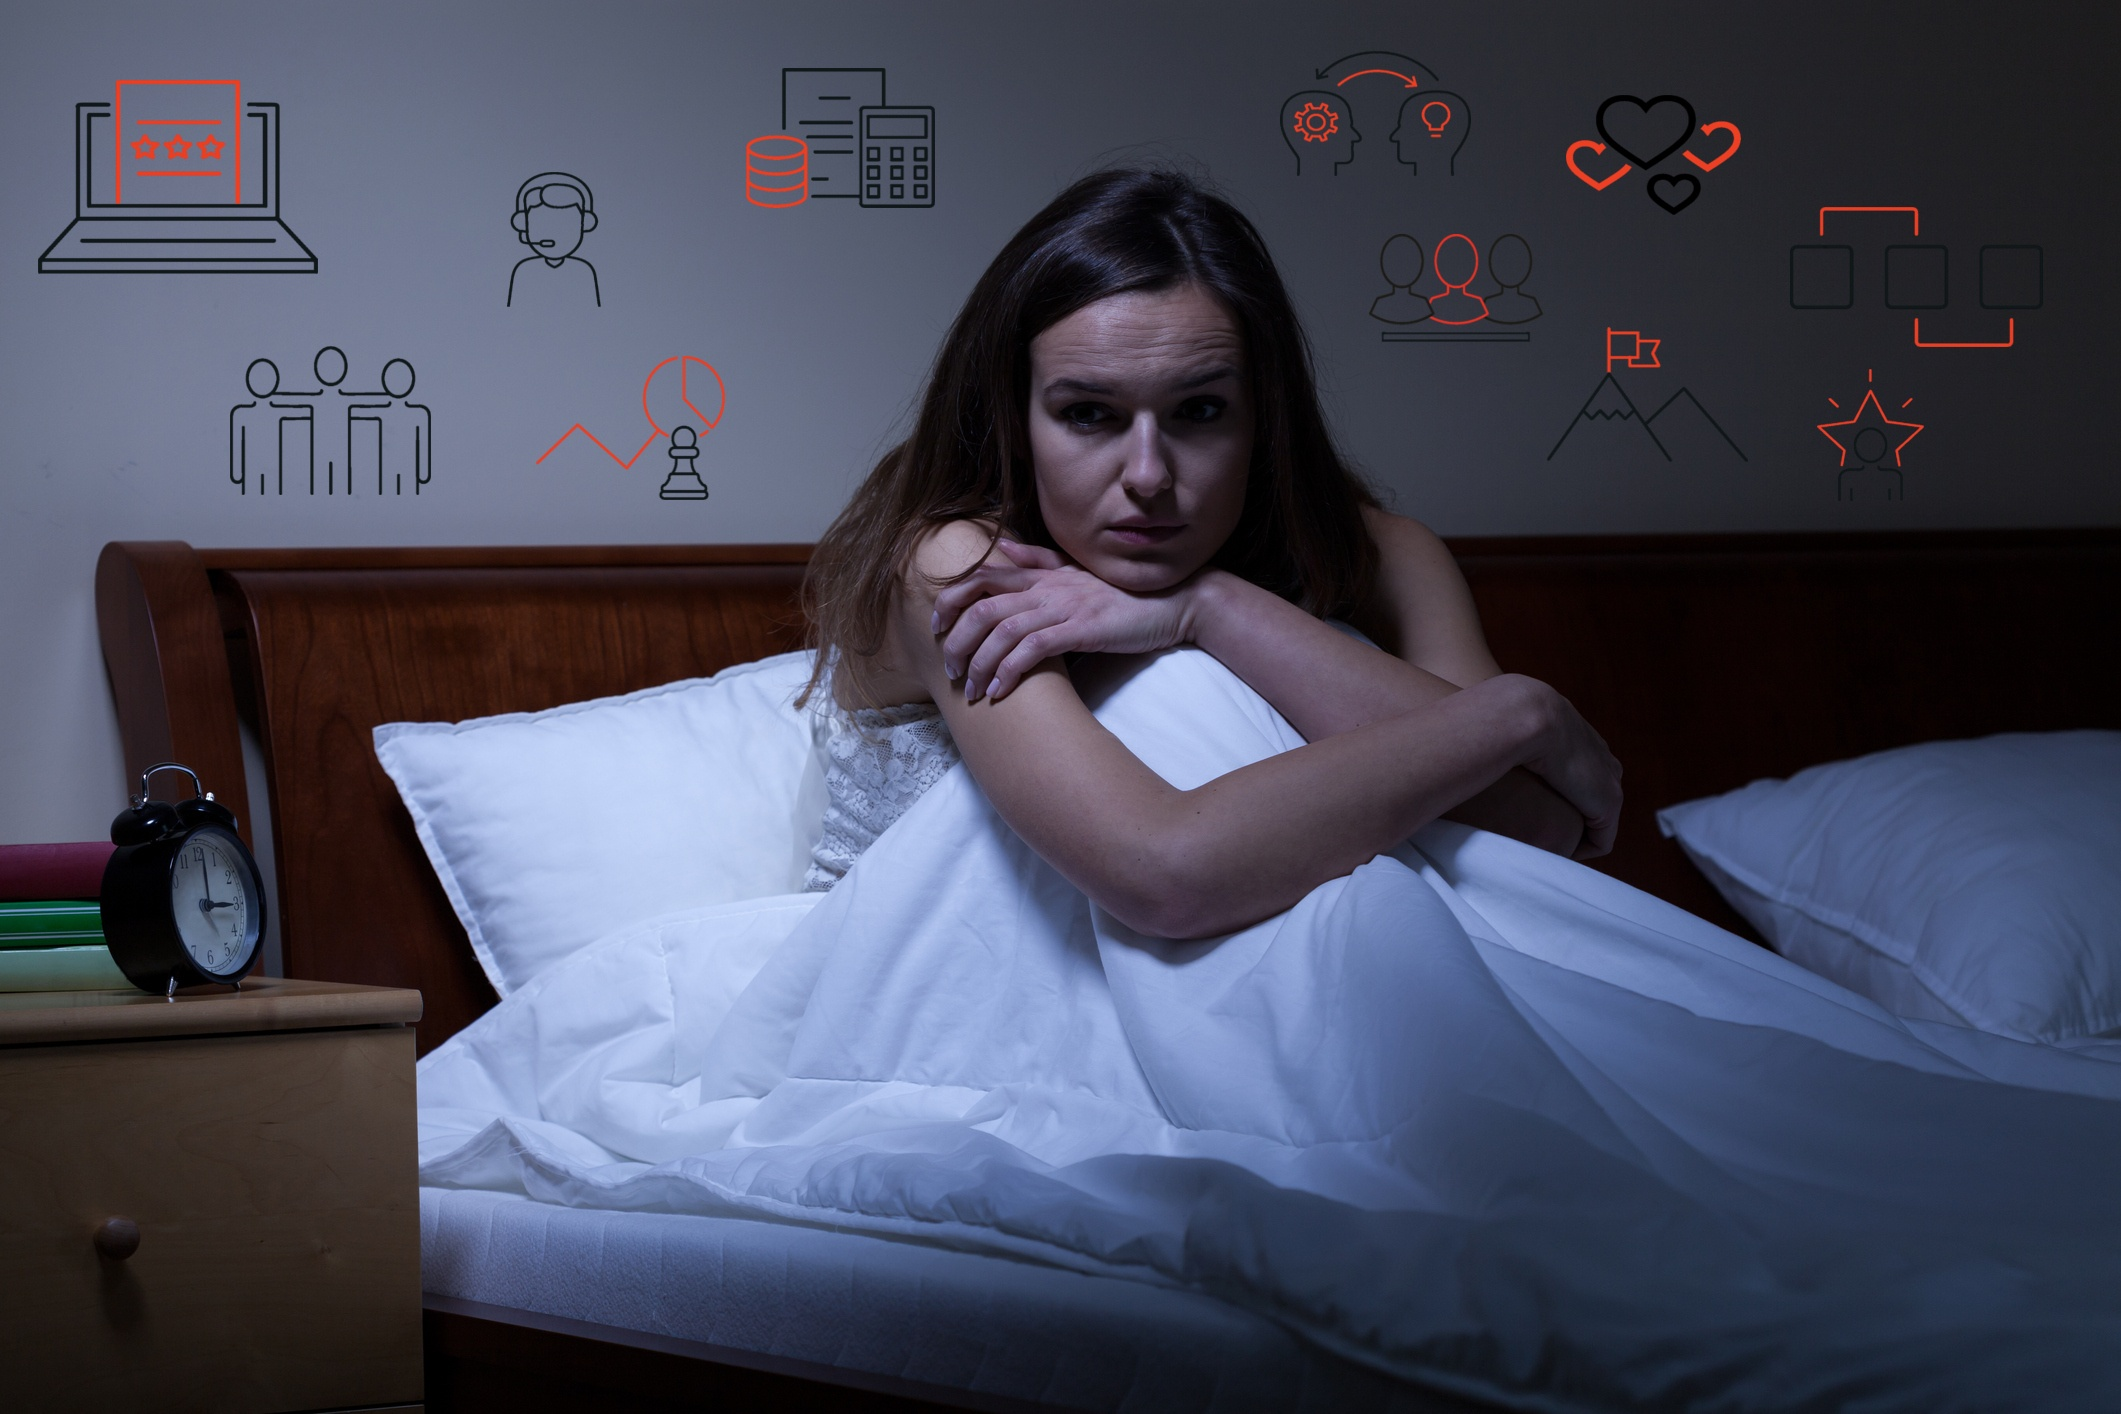 woman cant sleep at night merge ThinkstockPhotos various.jpg